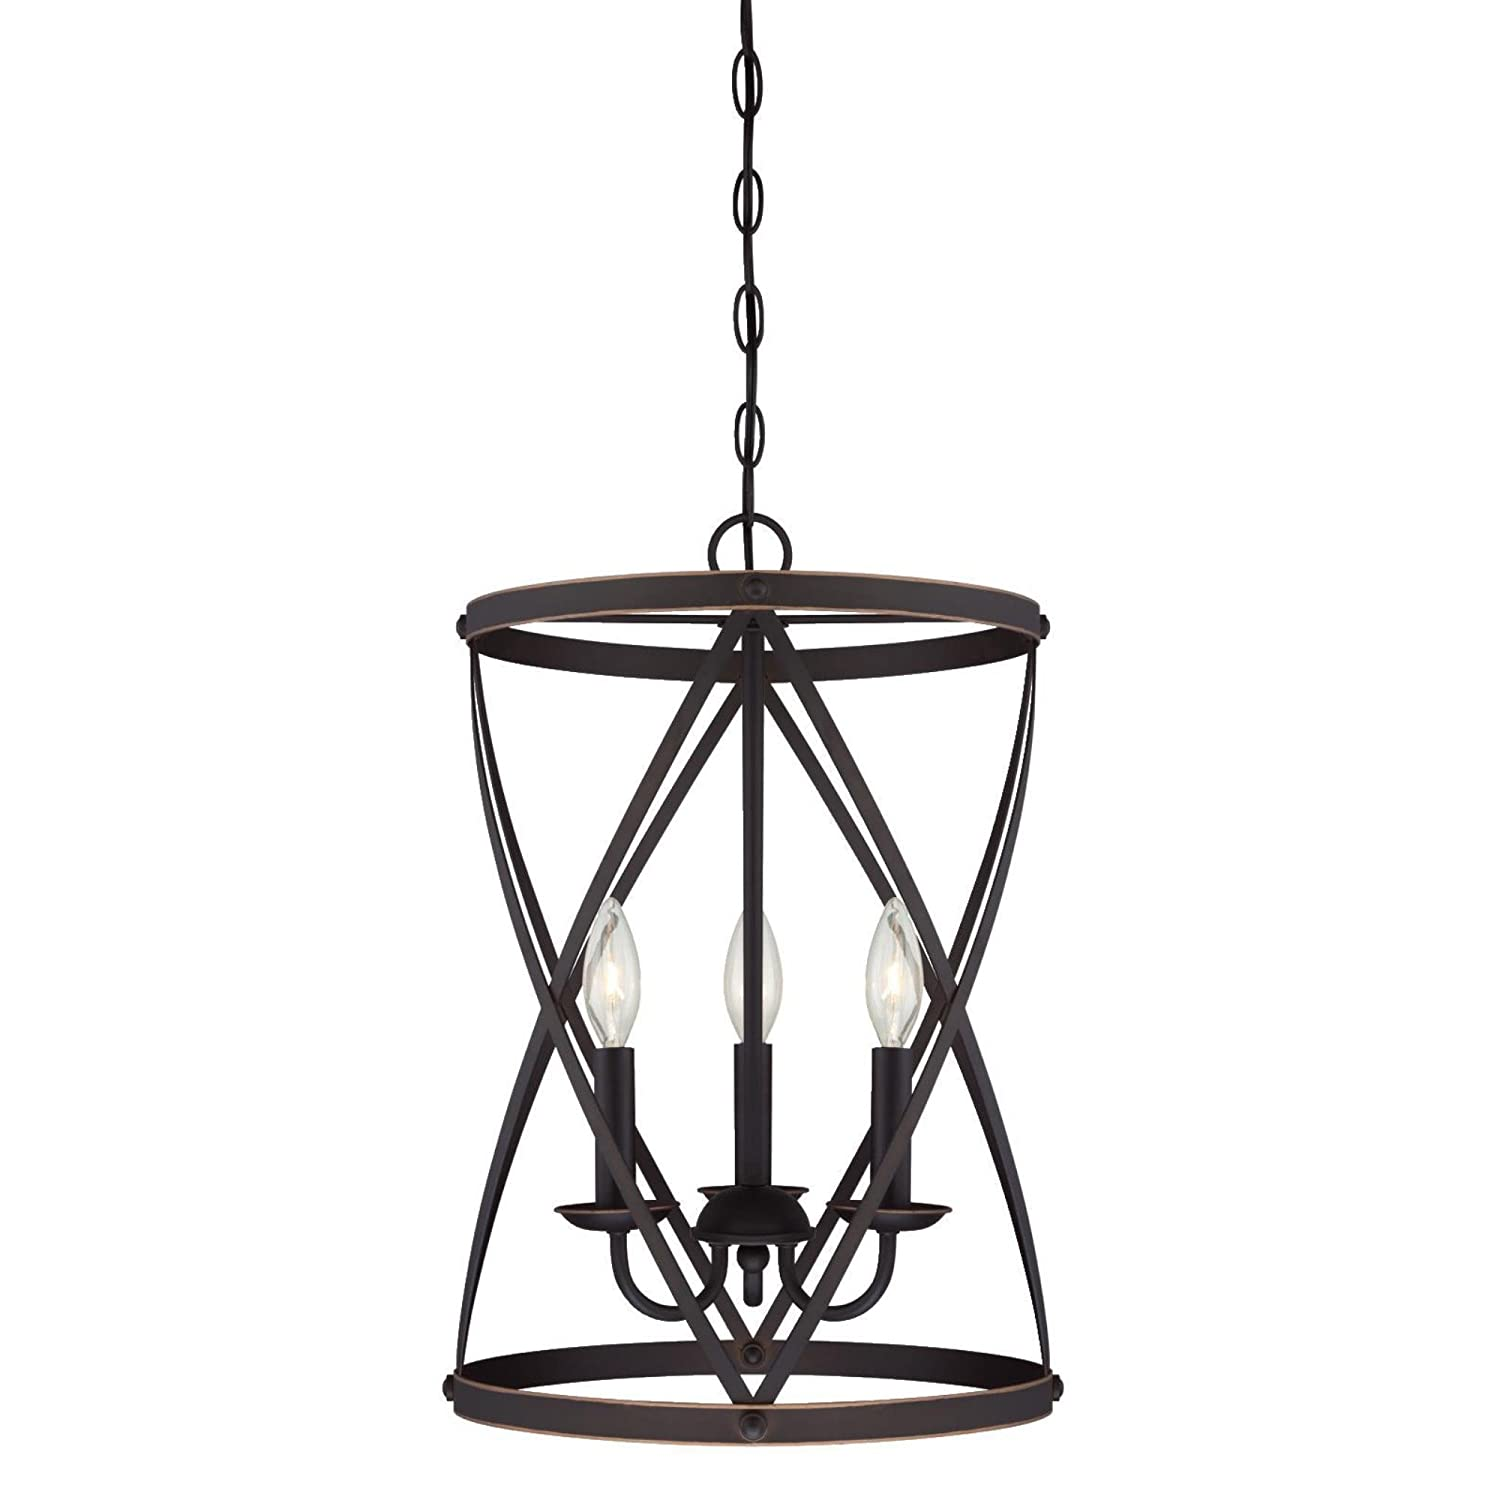 Westinghouse Lighting 6303700 Isadora Three-Light Indoor Chandelier, Oil Rubbed Bronze Finish with Highlights